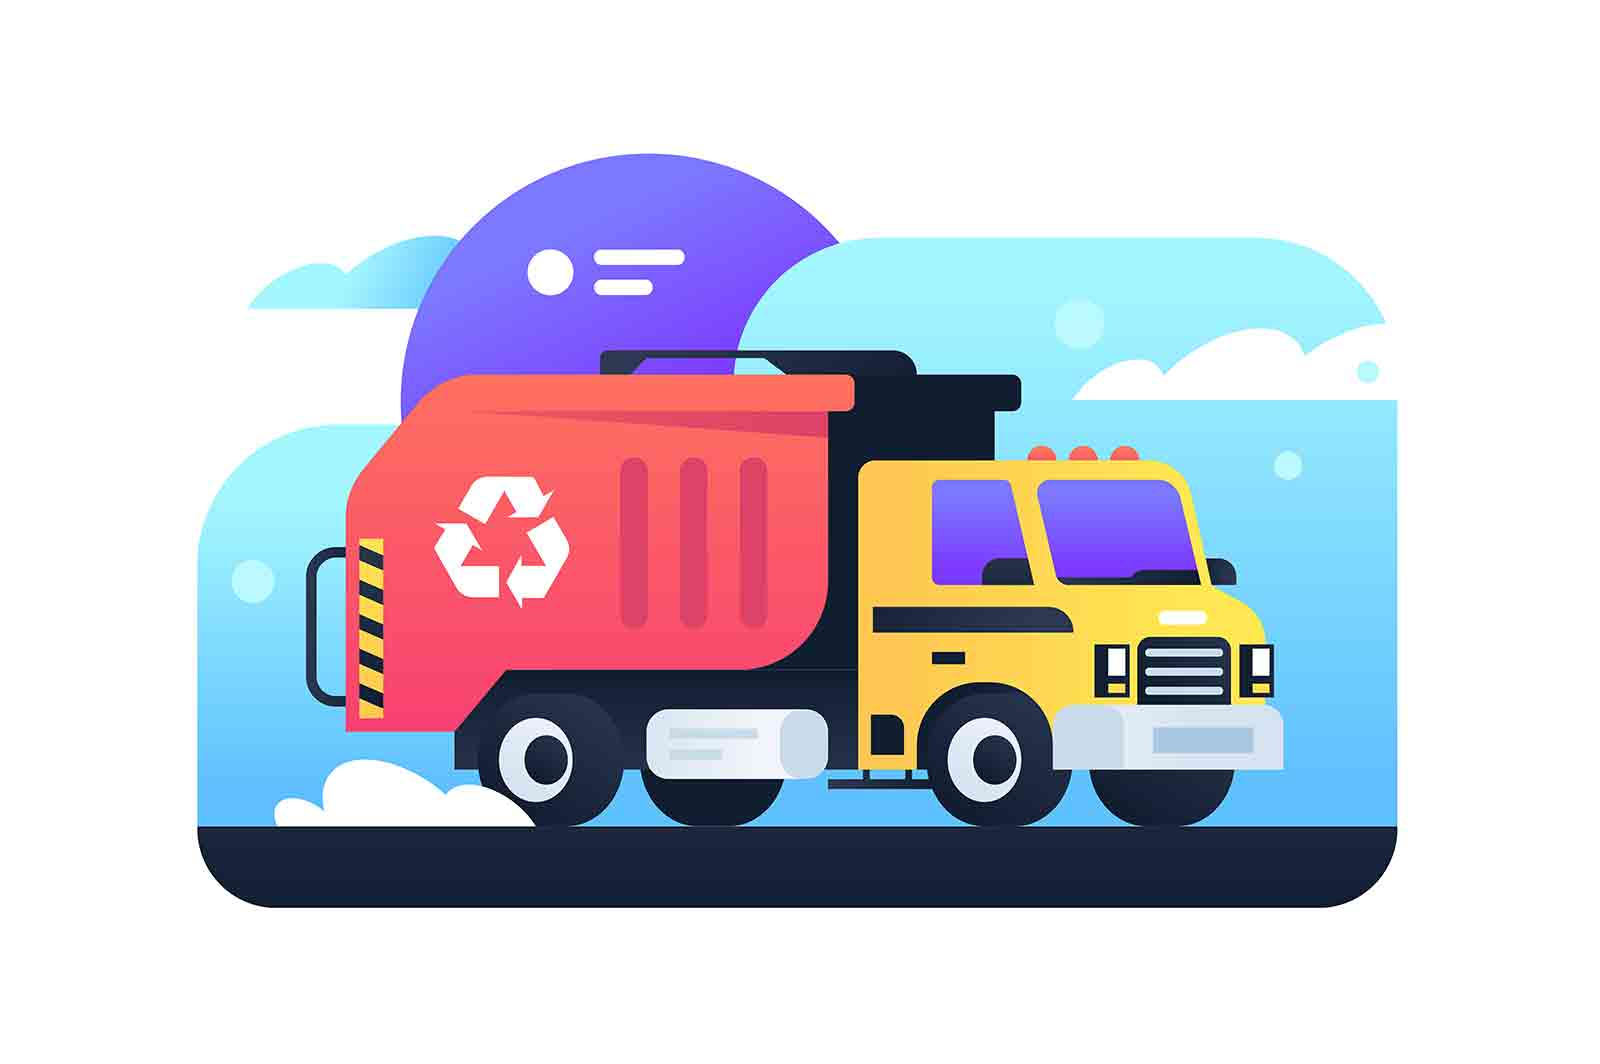 City garbage truck. Isolated concept city cleaning, urban bussines, transport, vehicle. Vector illustraion.